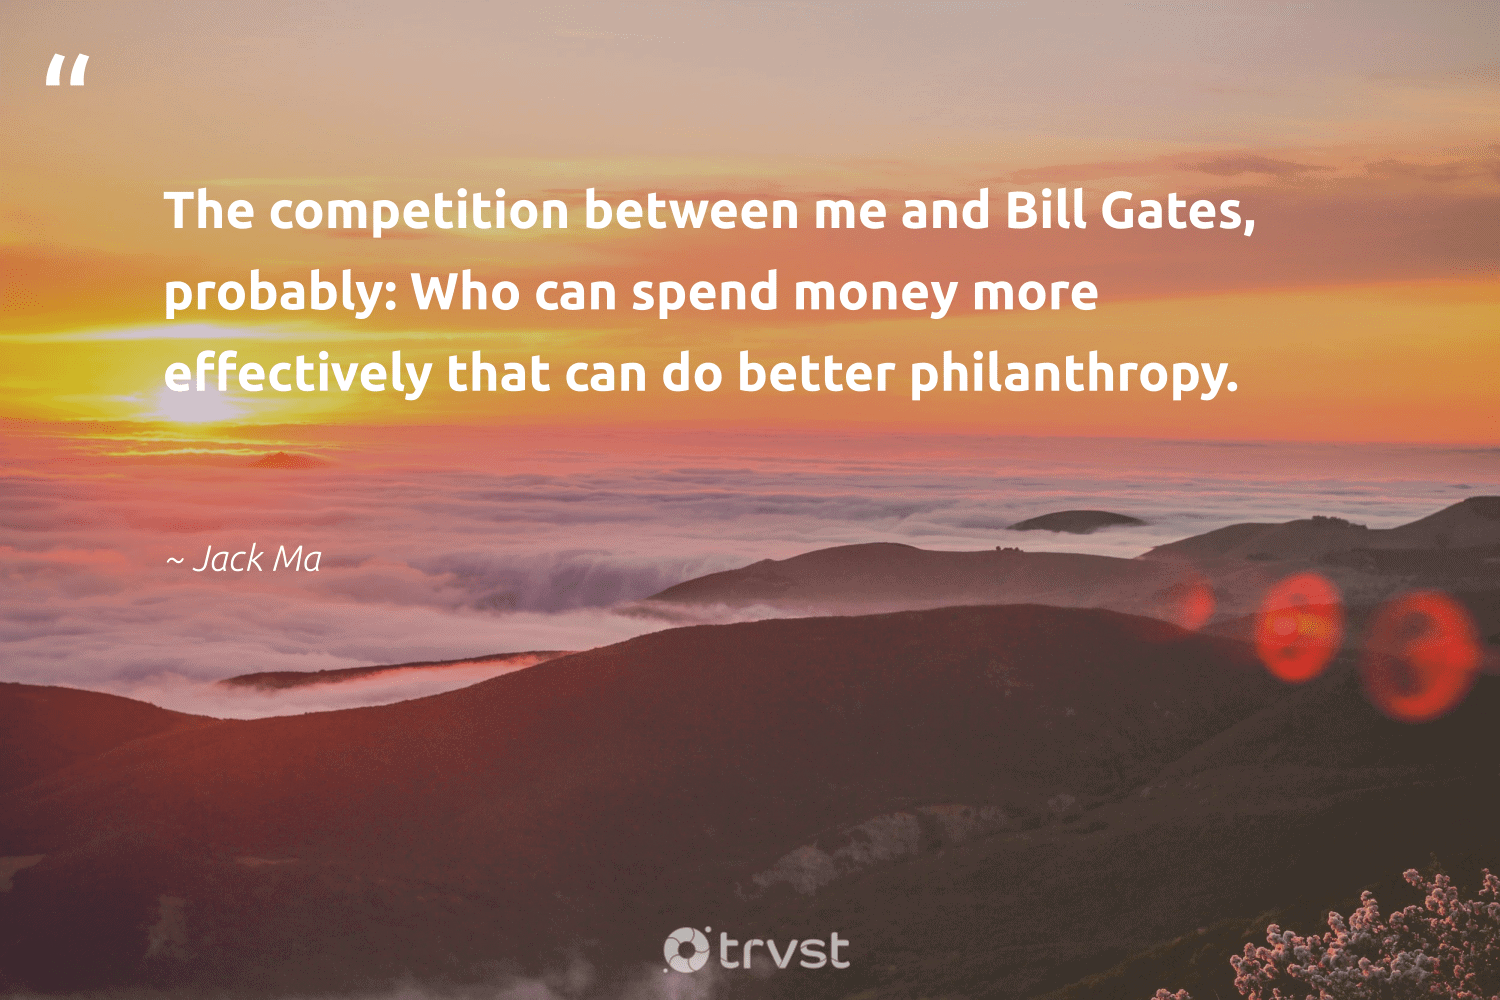 """The competition between me and Bill Gates, probably: Who can spend money more effectively that can do better philanthropy.""  - Jack Ma #trvst #quotes #philanthropy #philanthropic #togetherwecan #giveforthefuture #collectiveaction #changemakers #itscooltobekind #socialimpact #beinspired #thinkgreen"